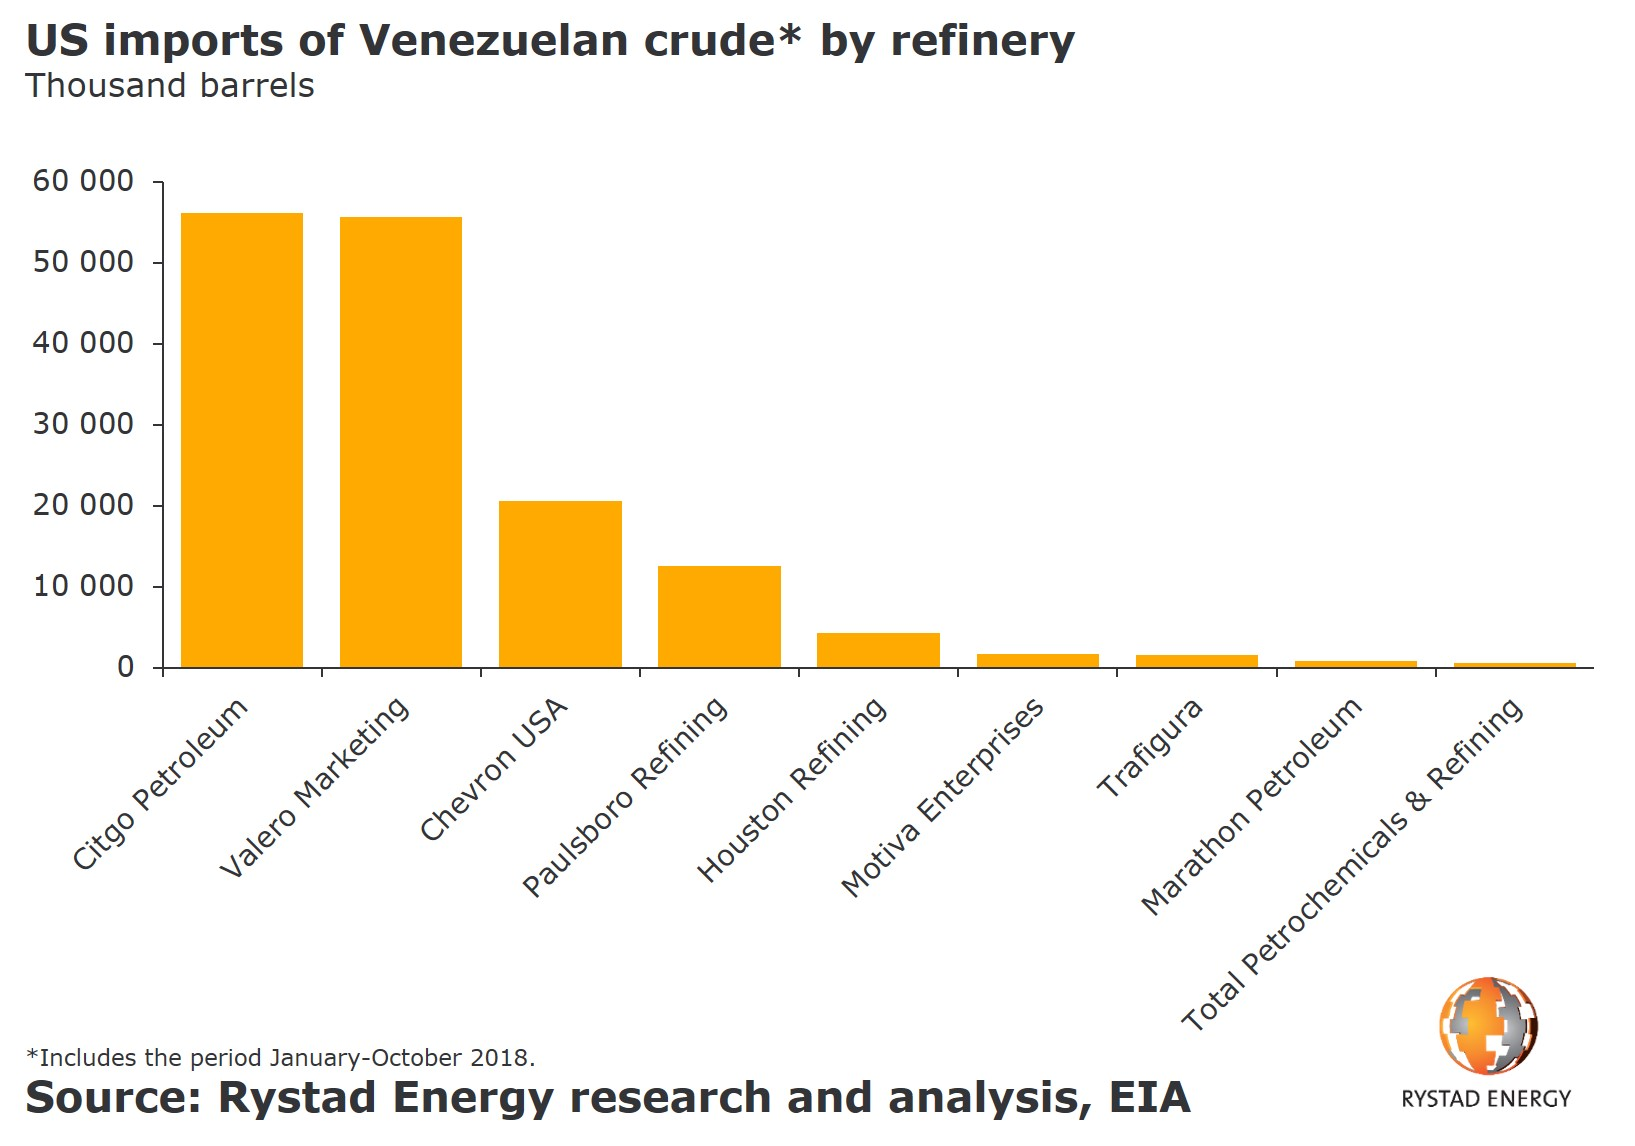 A bar chart showing the US imports of Venezuelan crude* by refinery in thousand barrels. Source: Rystad Energy research and analysis